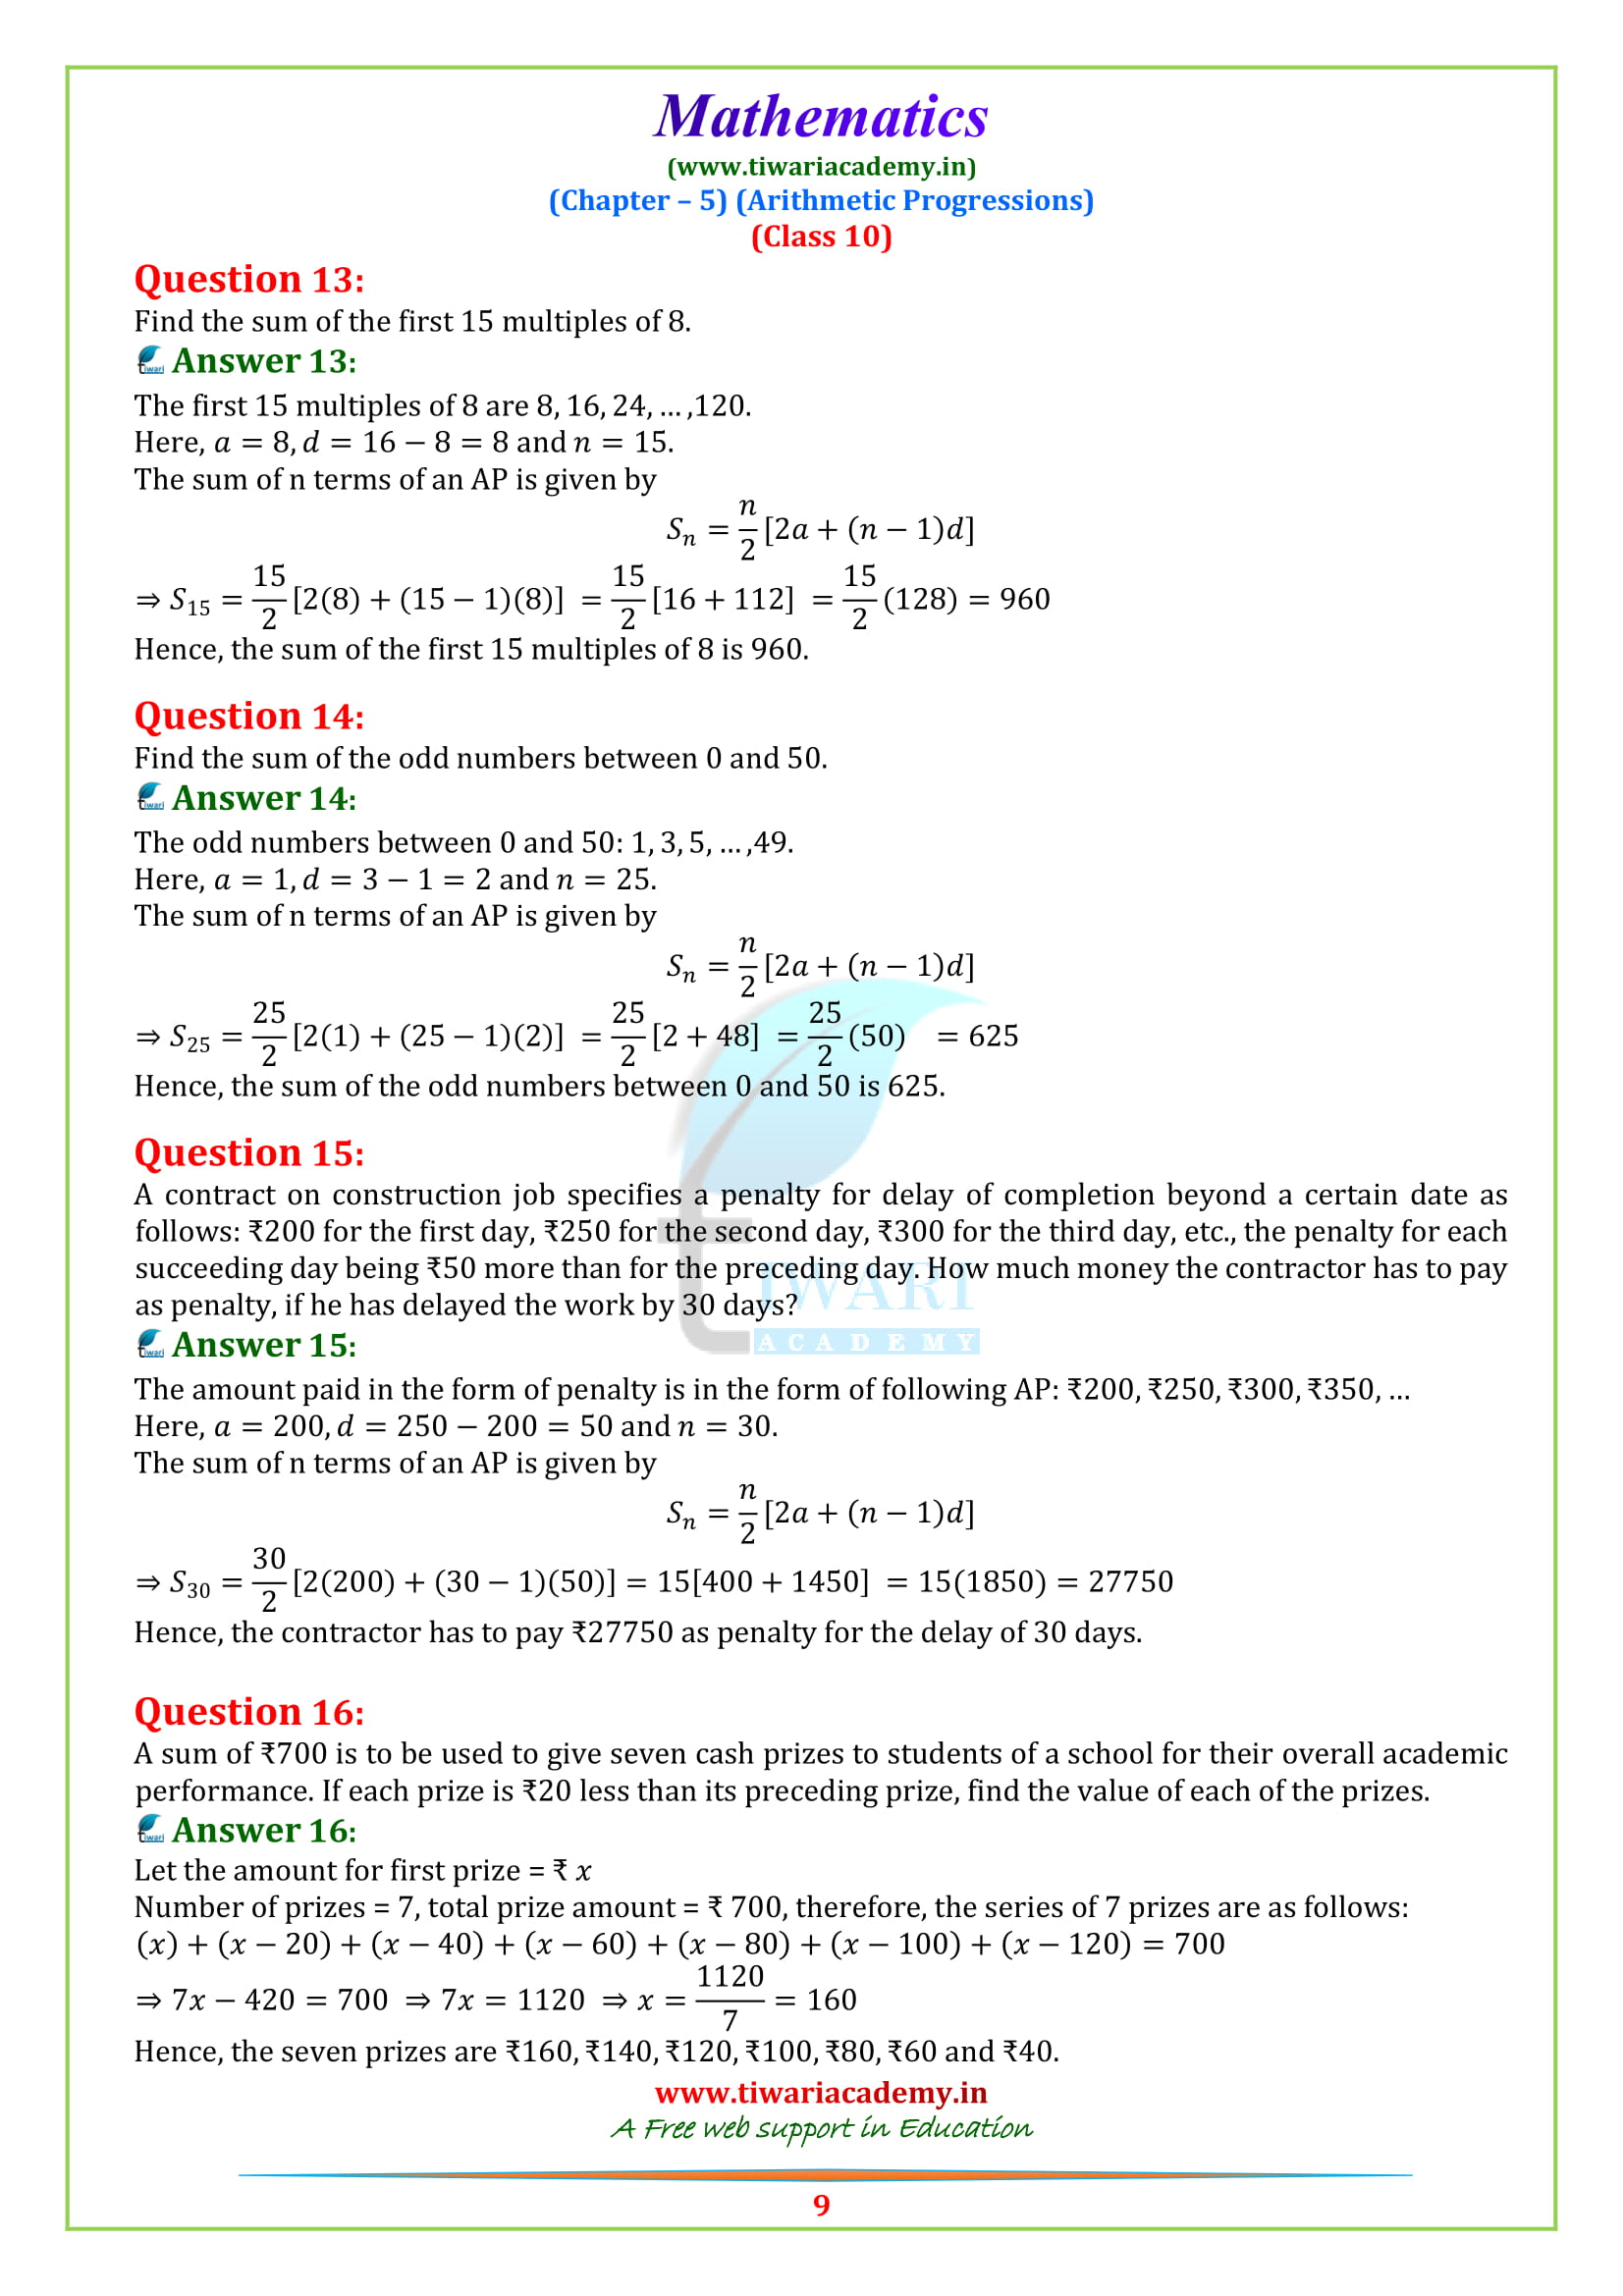 NCERT Sols for class 10 Maths exercise 5.3 for up board students